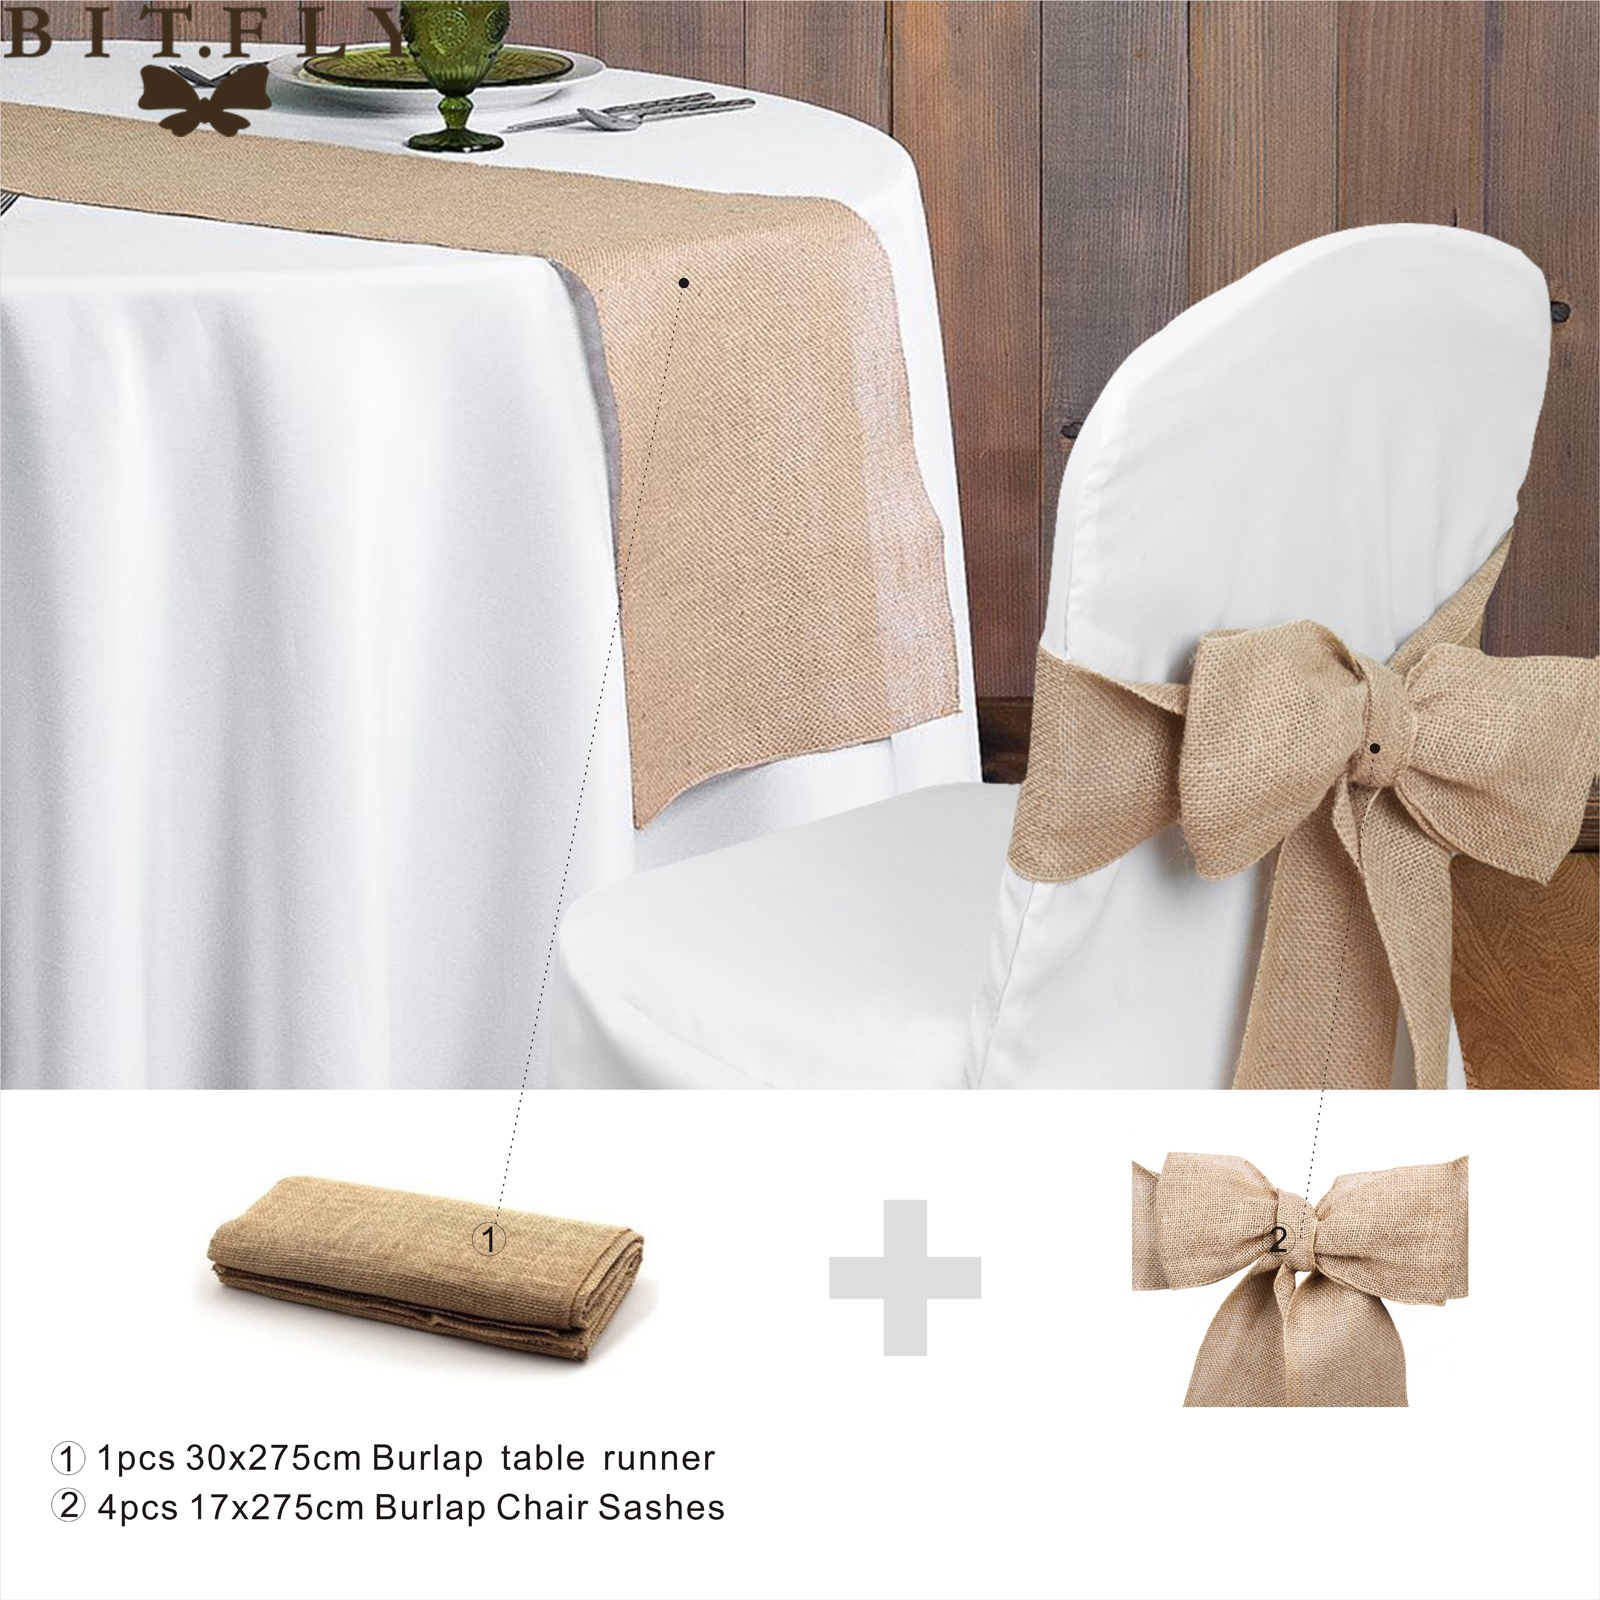 Rustic Theme Wedding Decoration Contain Burlap Chair Sashes Jute Chair Tie  Bow Burlap Table Runner Burlap Lace Tableware Pouch In Party DIY  Decorations From ...